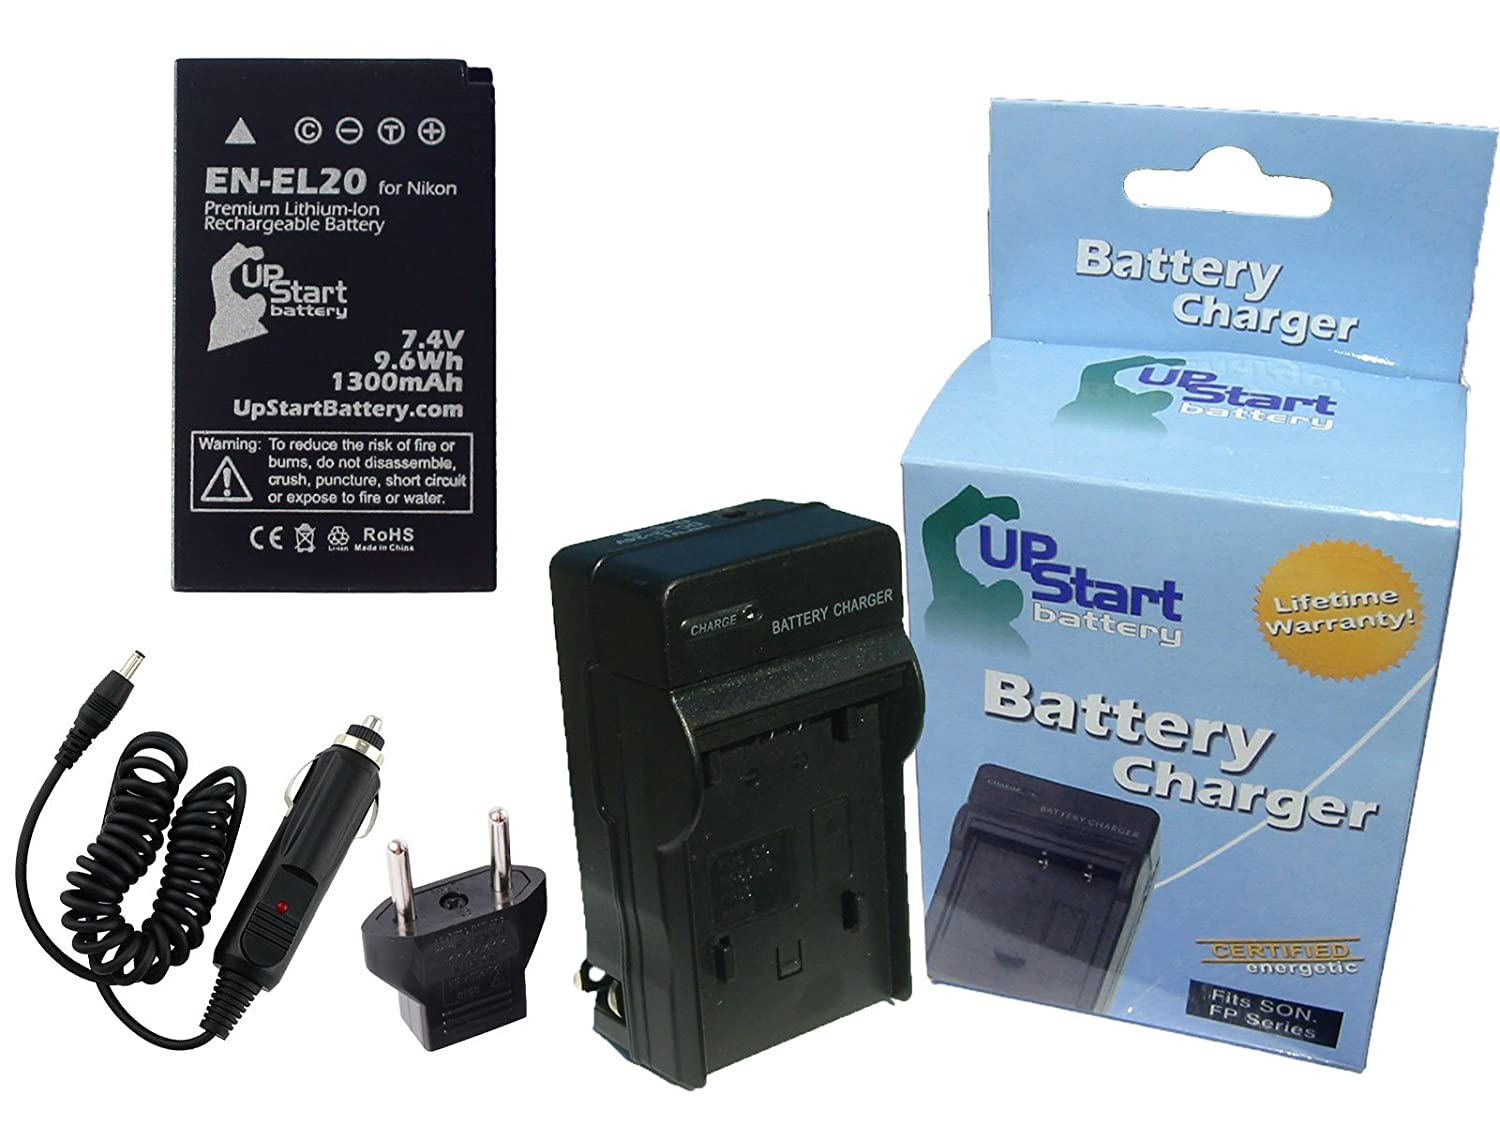 Nikon 1 J3 Battery and Charger with Car Plug and EU Adapter - Replacement for Nikon EN-EL20 Digital Camera Batteries and Chargers (1300mAh, 7.4V, Lithium-Ion) Upstart Battery EN-EL20-KIT-CAR-EU-DL3